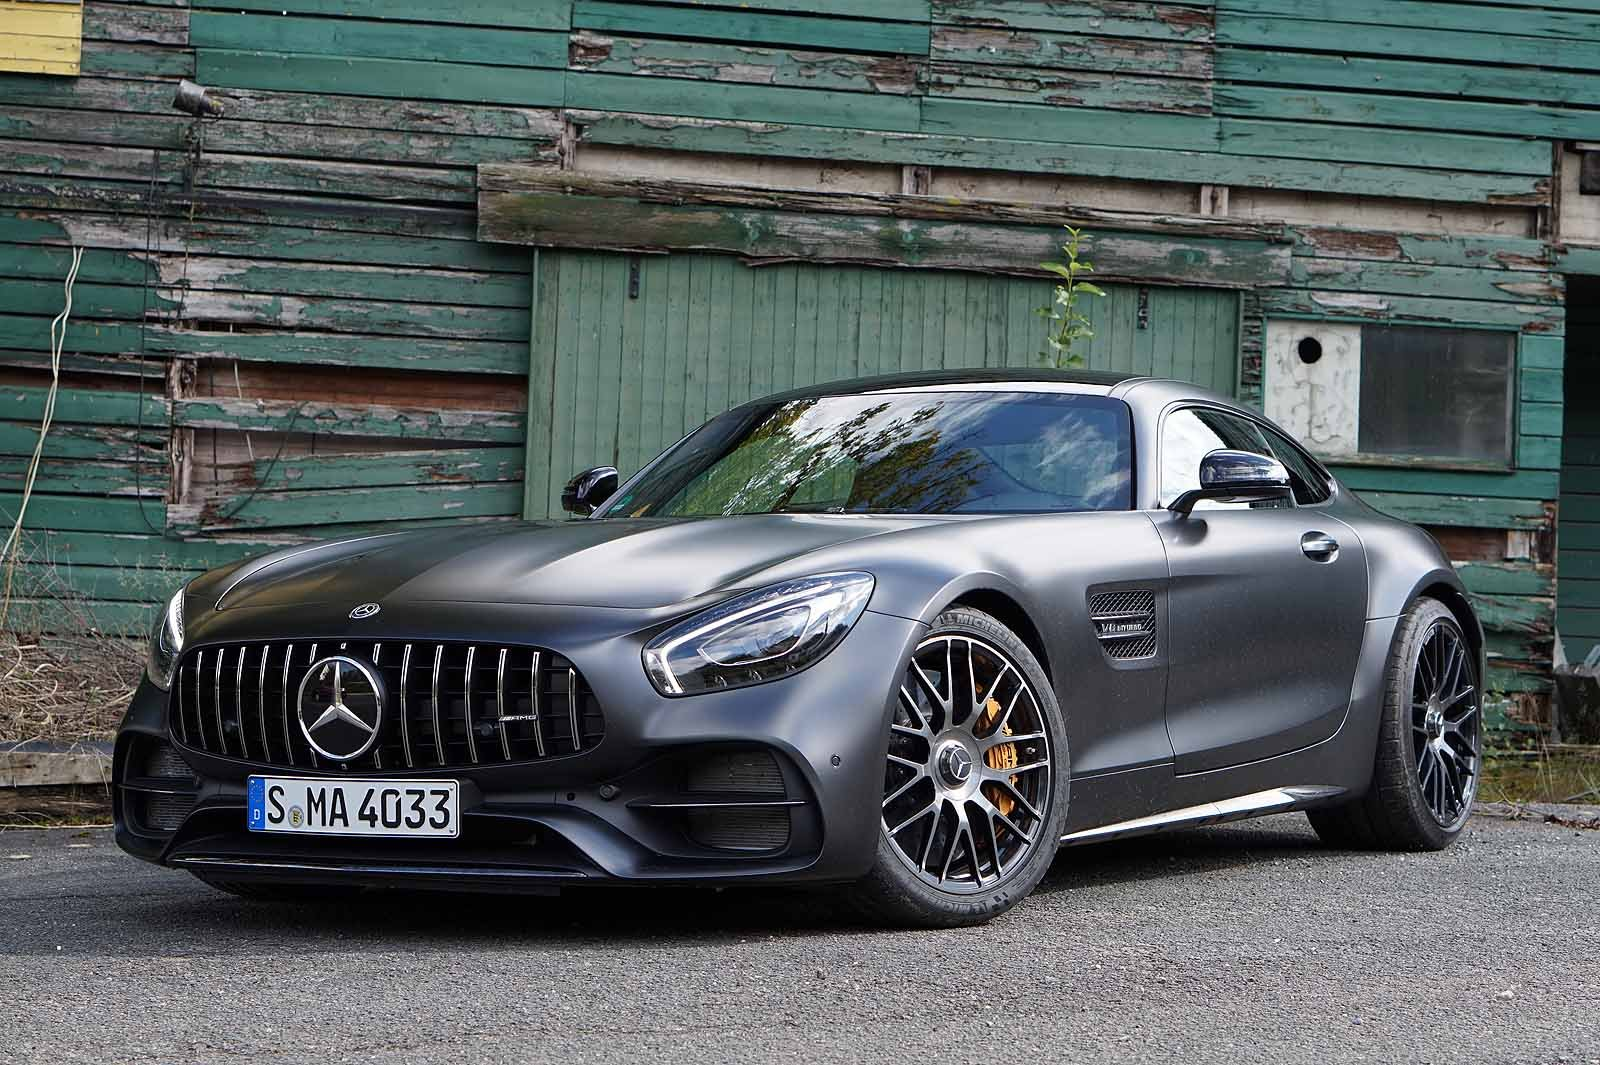 2018 Mercedes-AMG GT Review: We Drive the Whole Family and